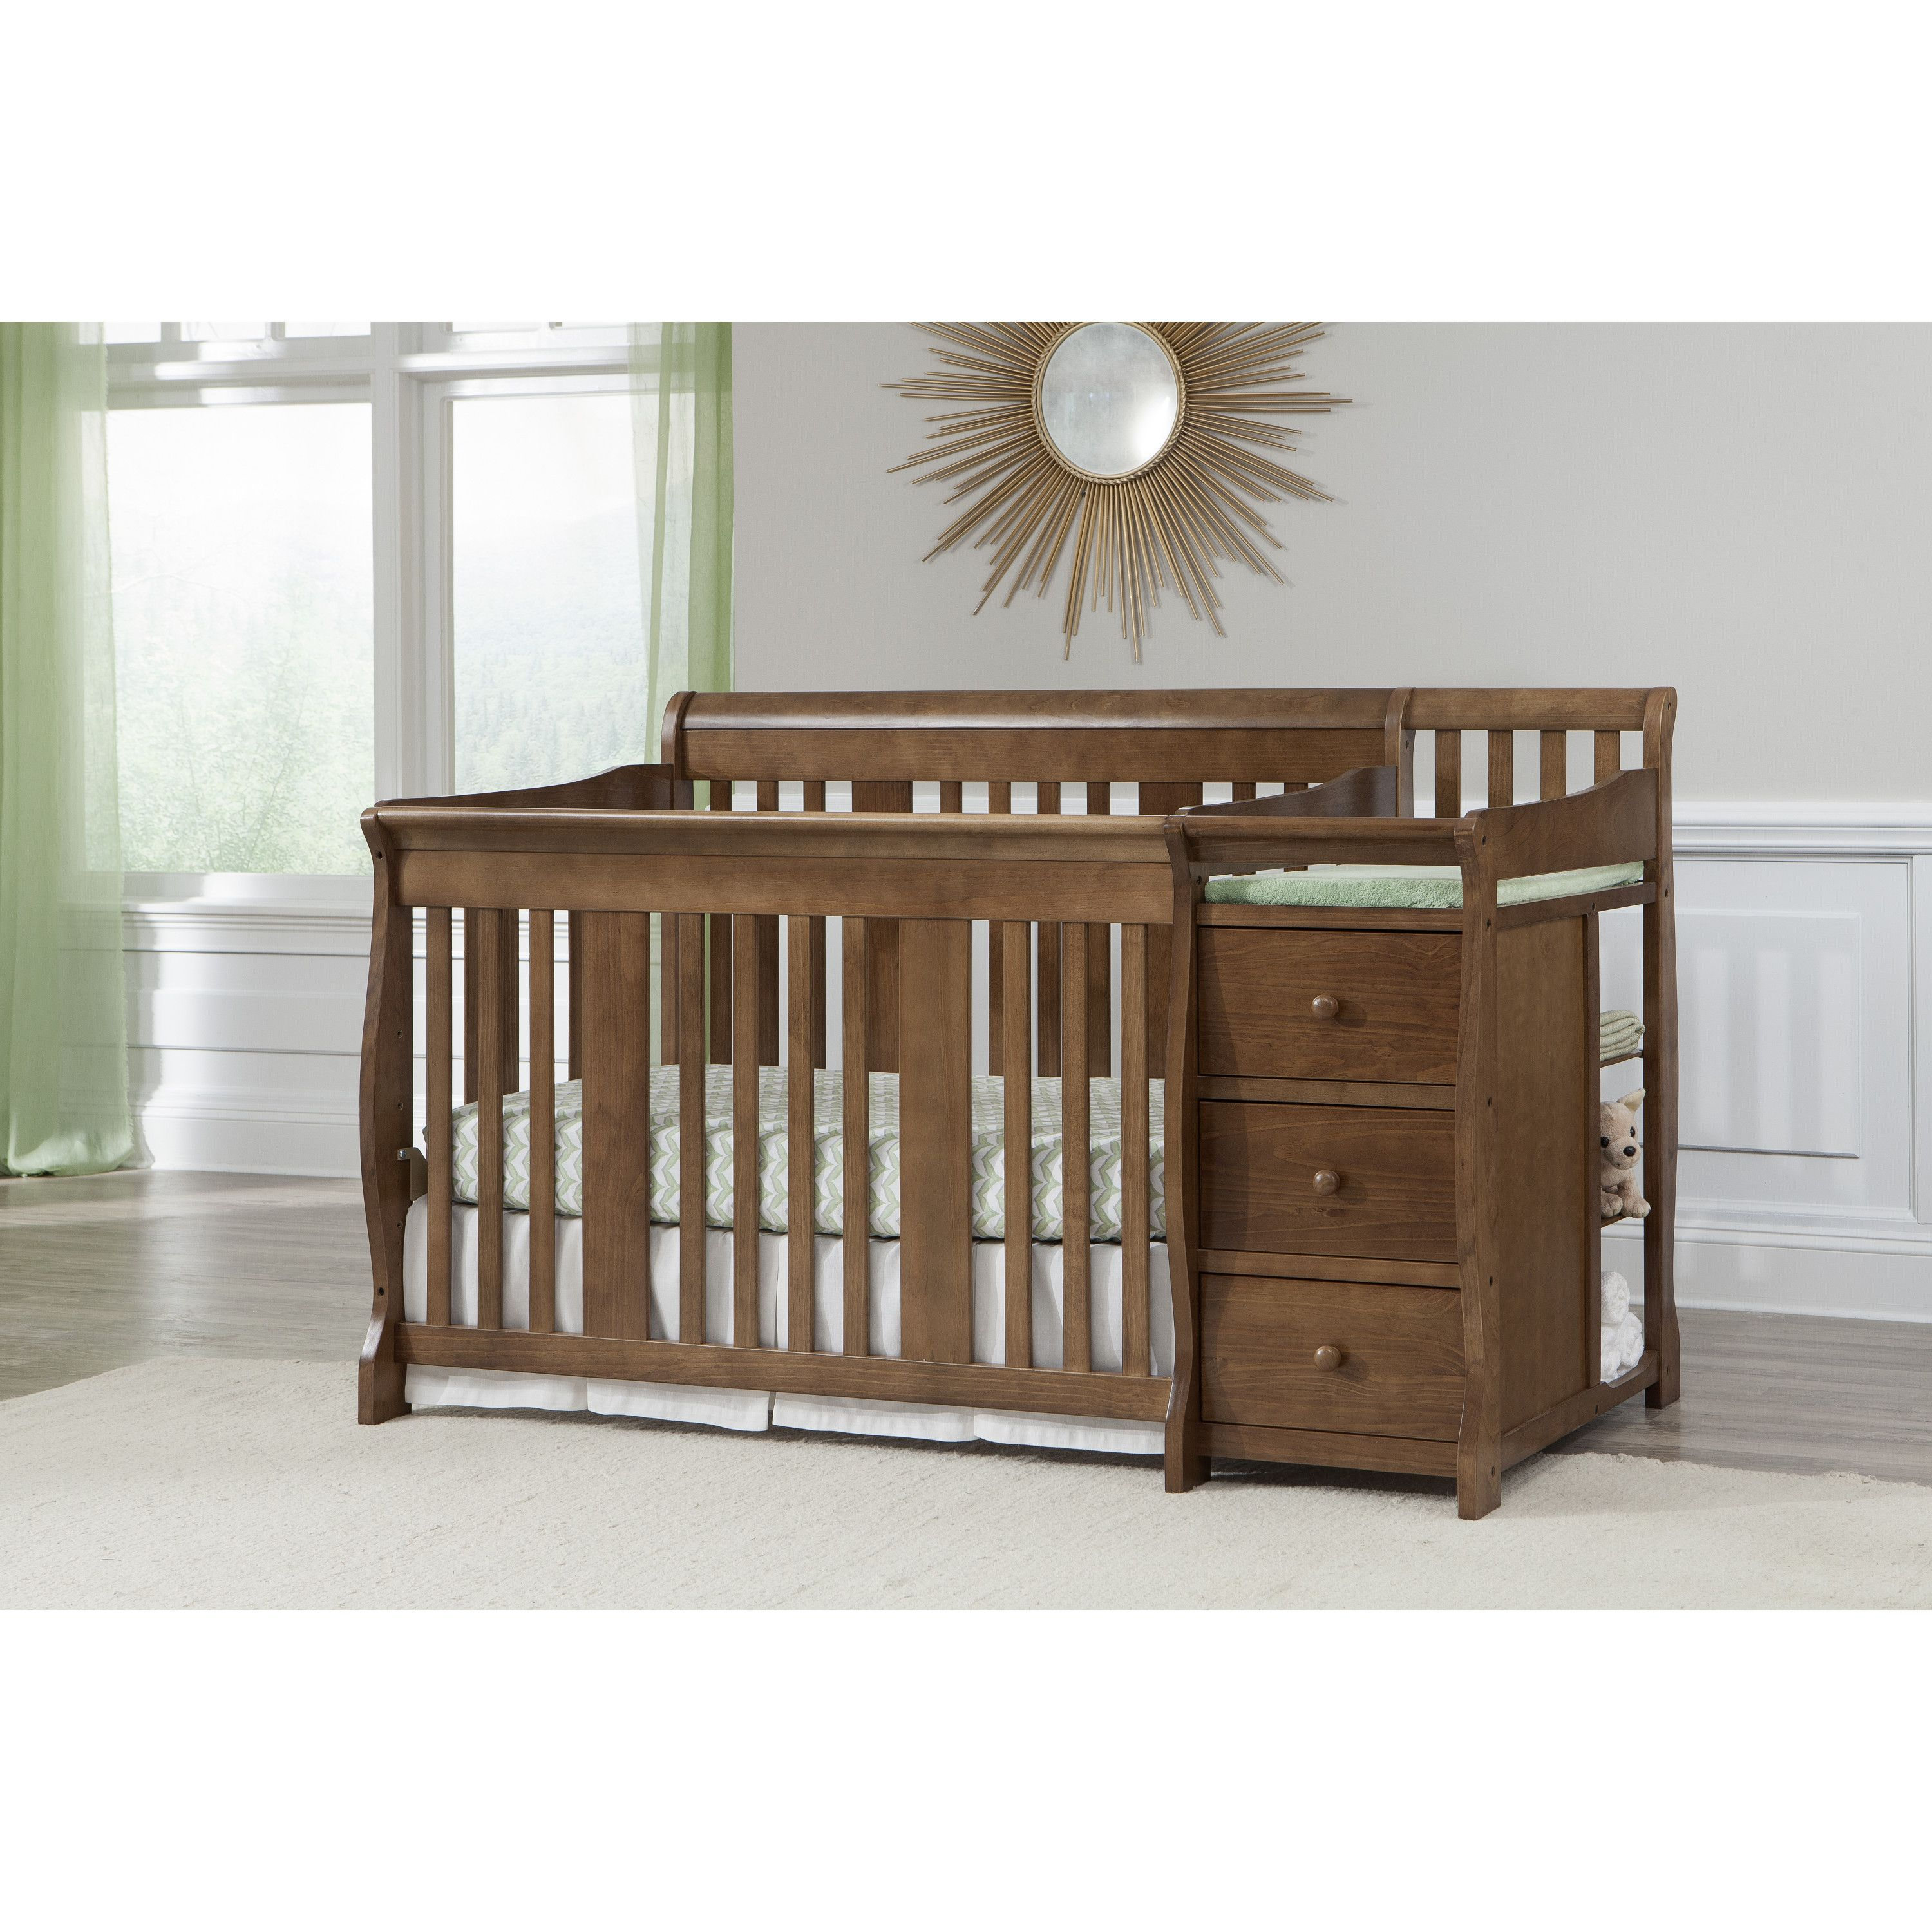 changer combo junction children crib delta convertible src prod and color com wfrcdn in p princeton gray